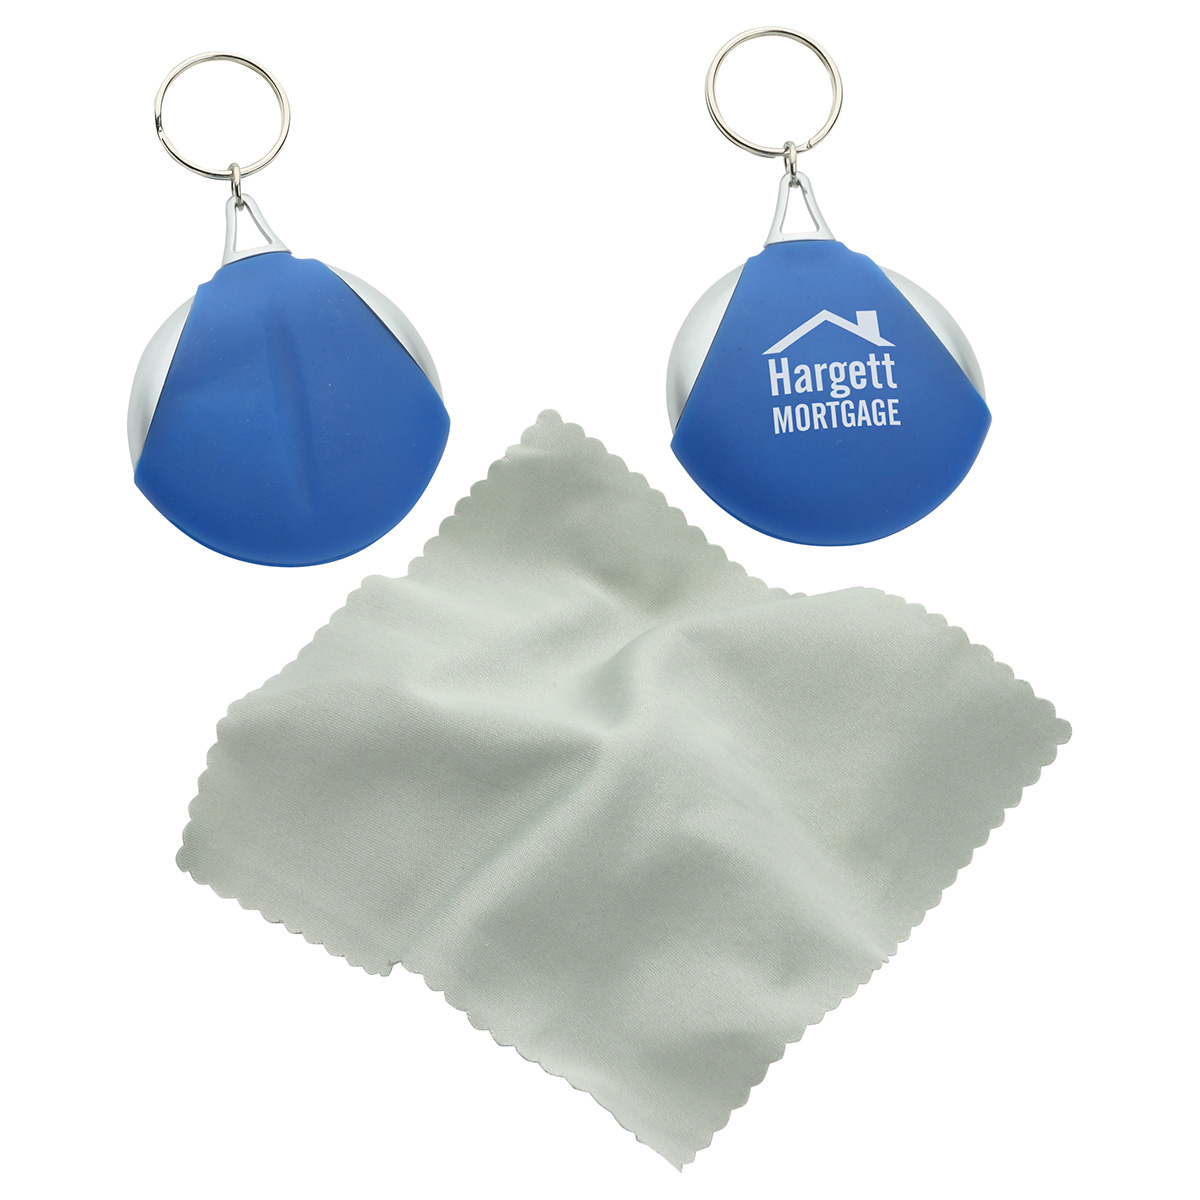 Pocket Microfiber Lens Cloth Keychain, WEE-PC11 - 1 Colour Imprint